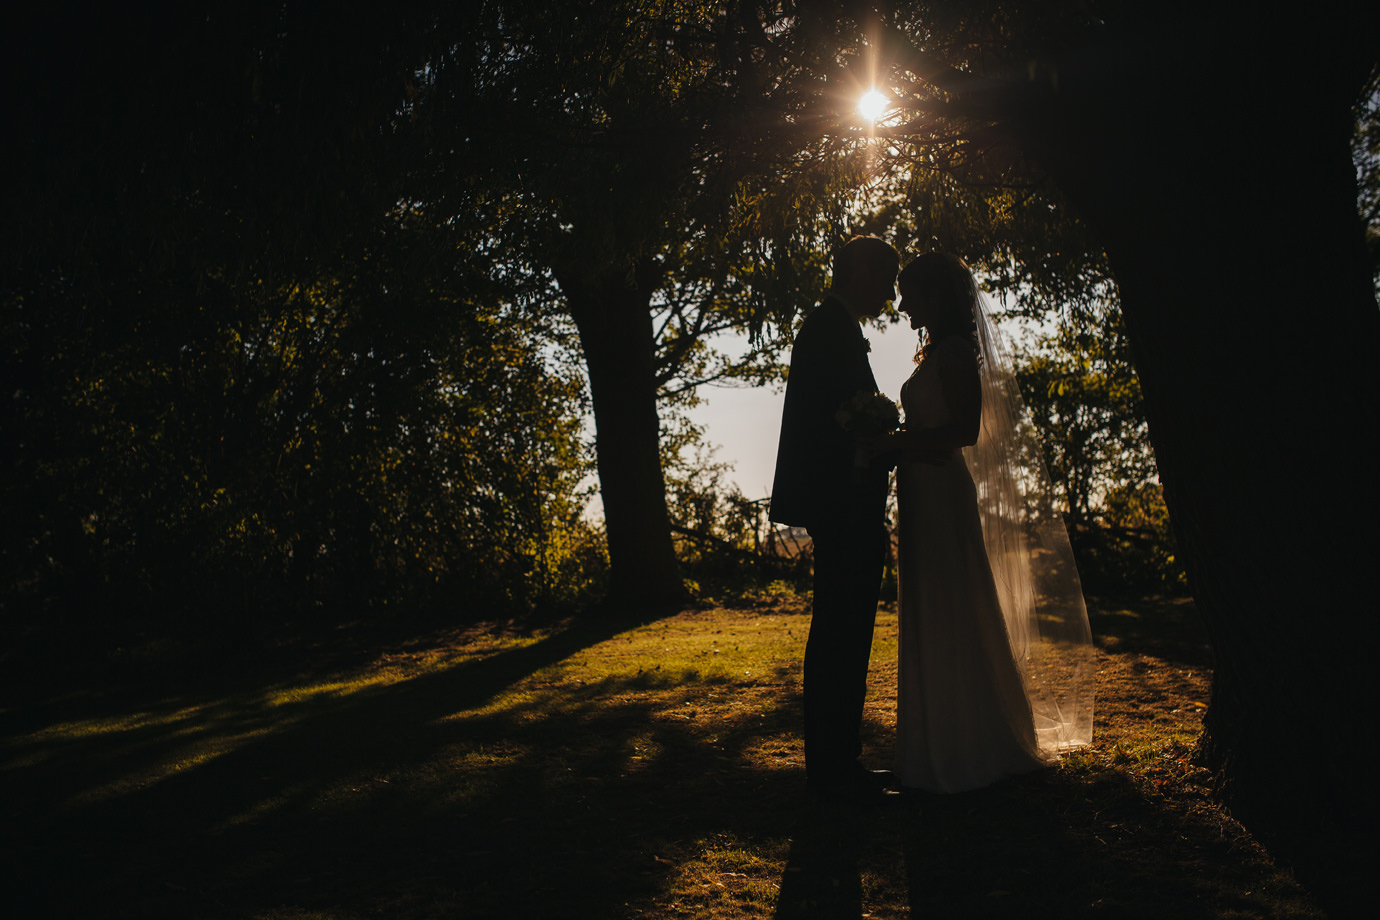 Bride and groom silhouette portrait against a backlit woodland